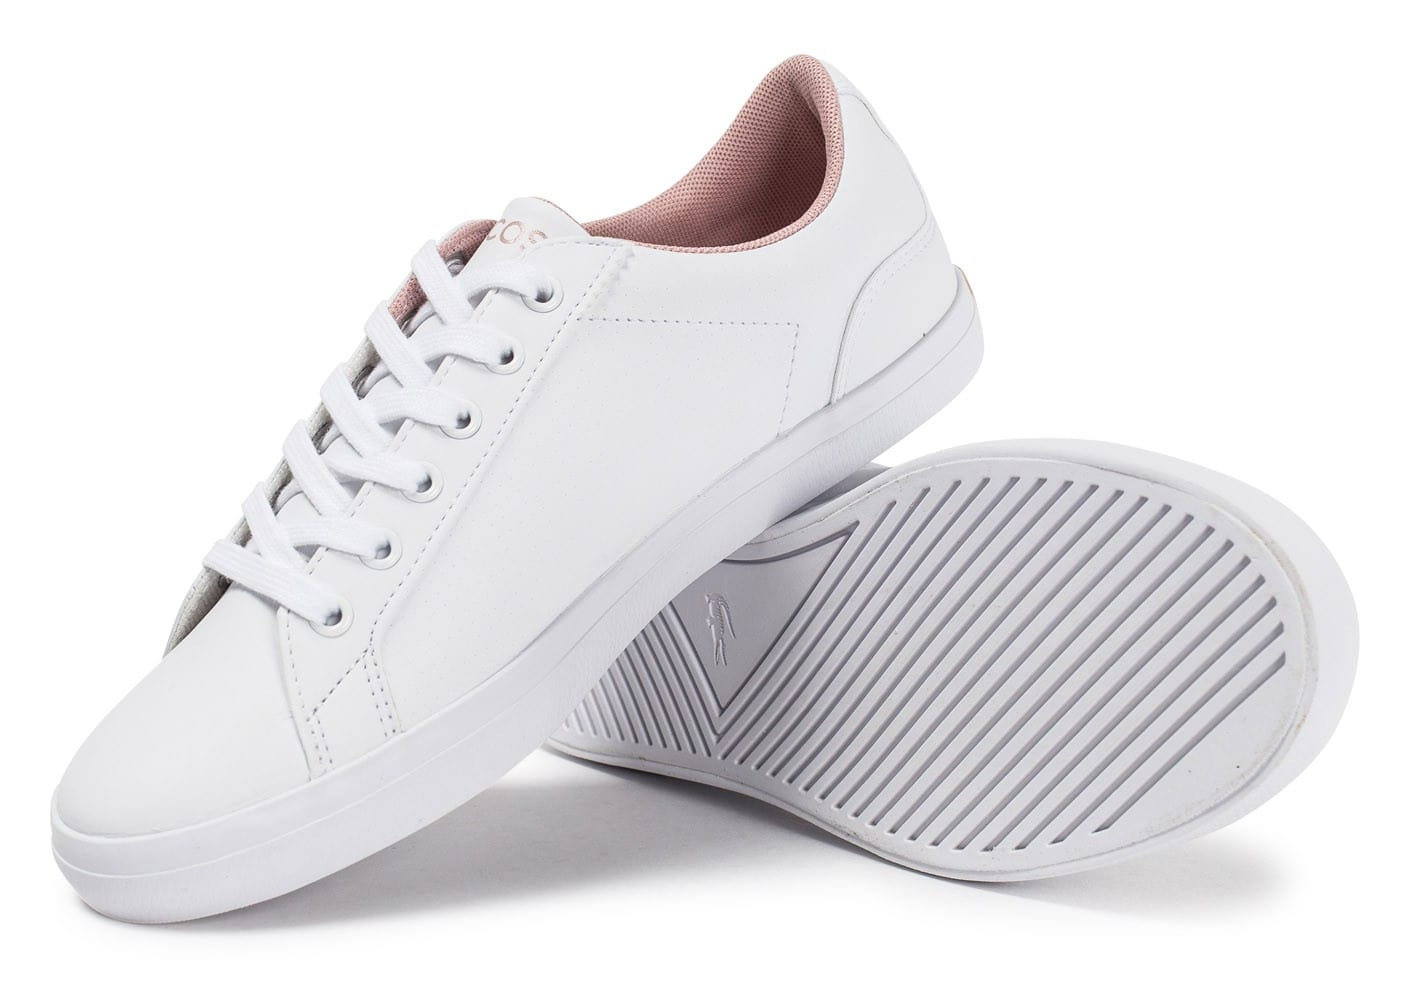 competitive price 82bf5 e16cd Cliquez pour zoomer Chaussures Lacoste Lerond Perf blanche et rose vue  extérieure Chaussures Lacoste Lerond Perf blanche et rose vue intérieure  Chaussures ...